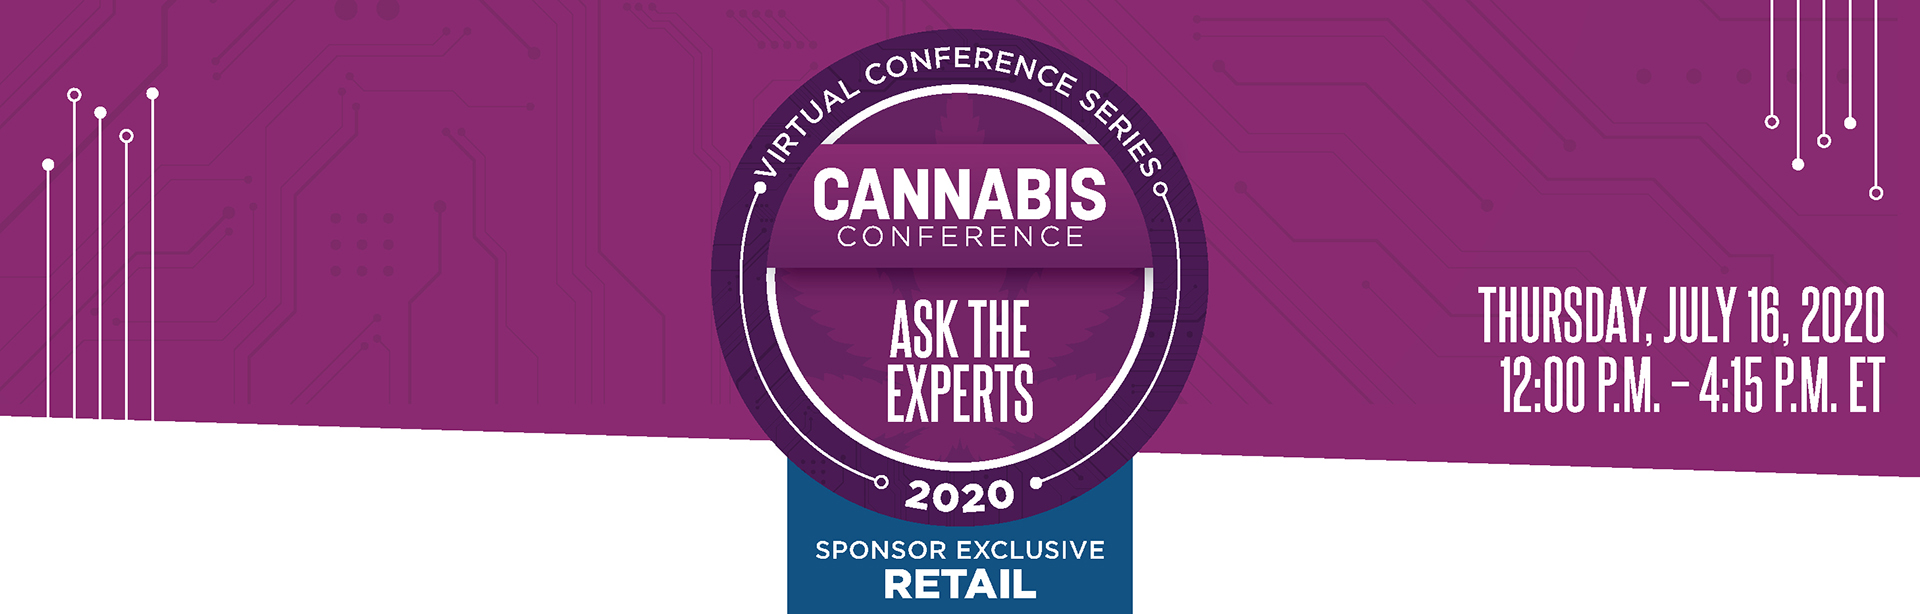 Cannabis Conference Ask The Experts